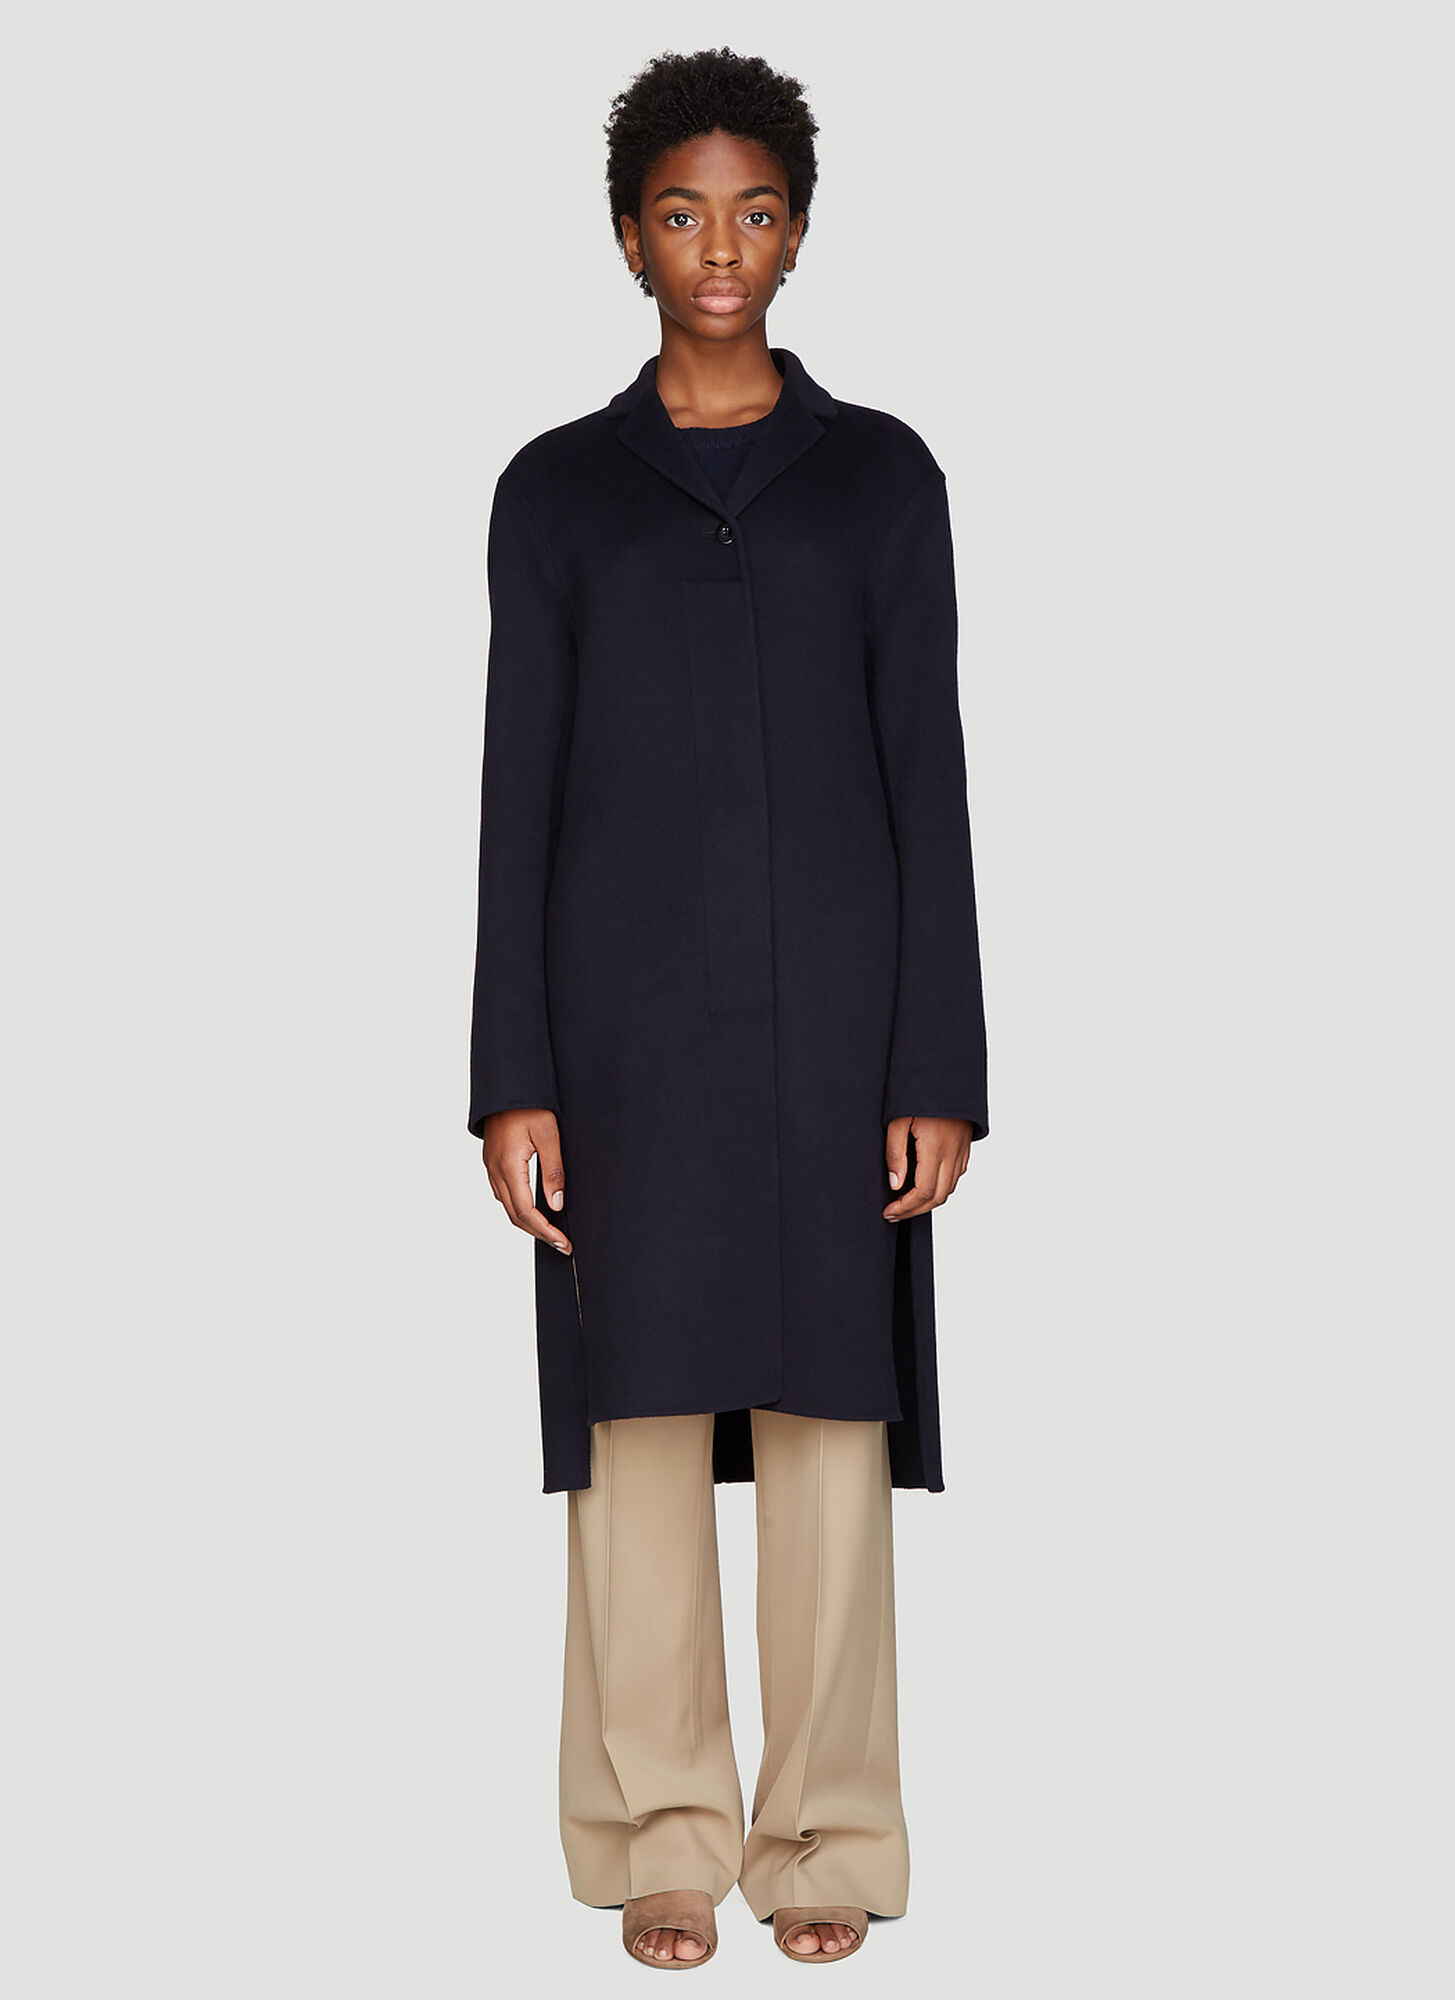 Jil Sander Cashmere Coat in Navy